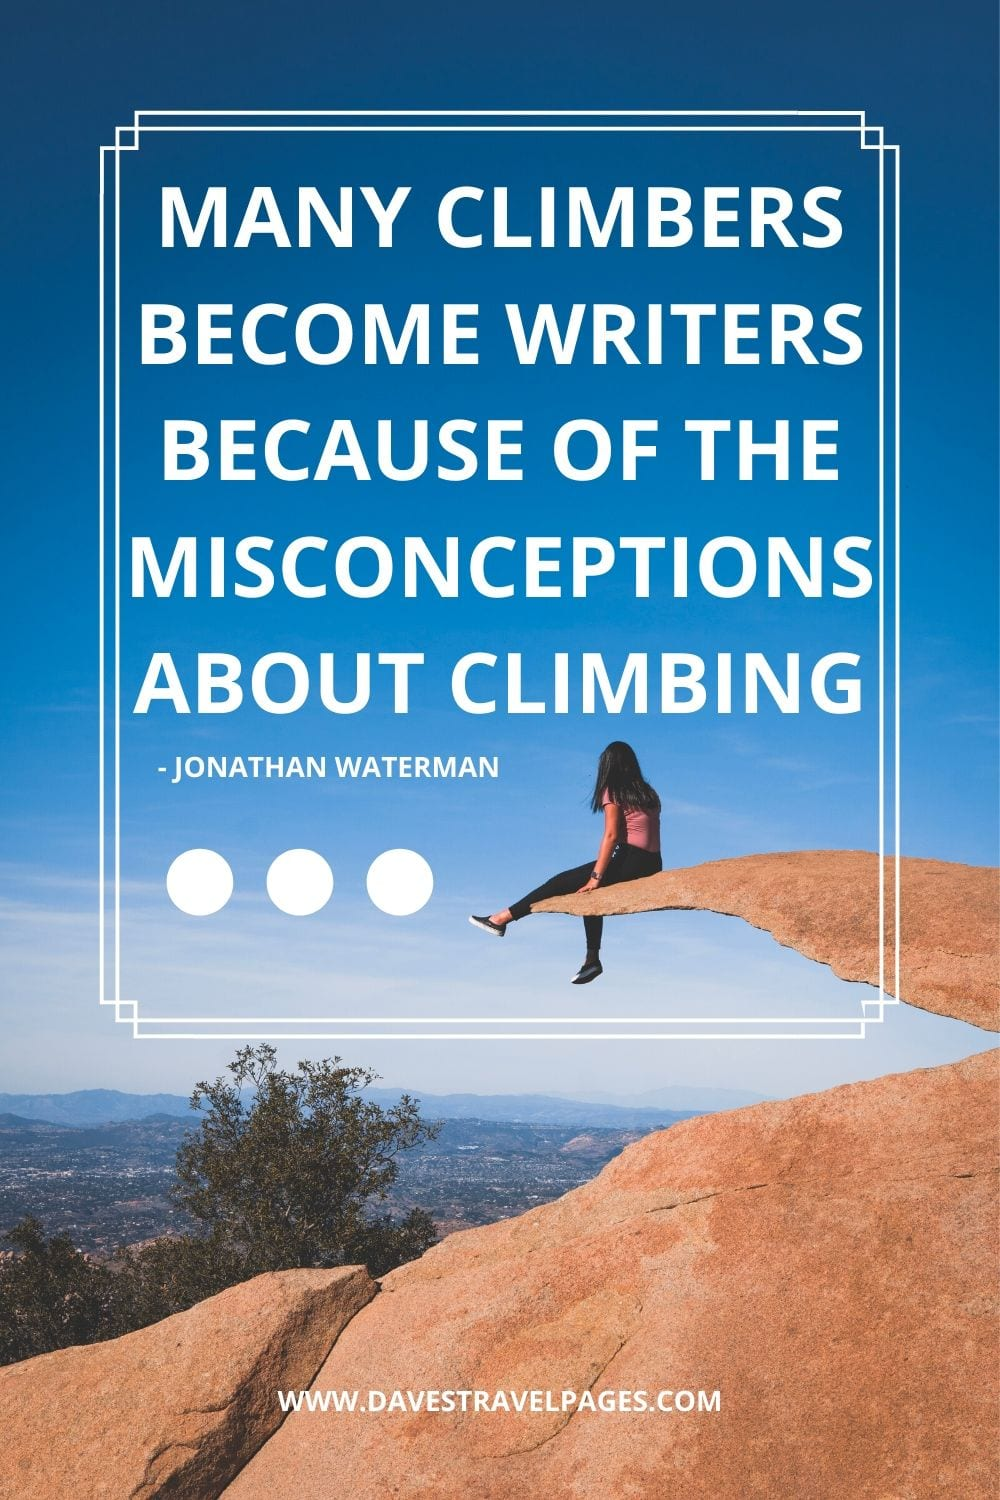 Many climbers become writers because of the misconceptions about climbing - Jonathan Waterman